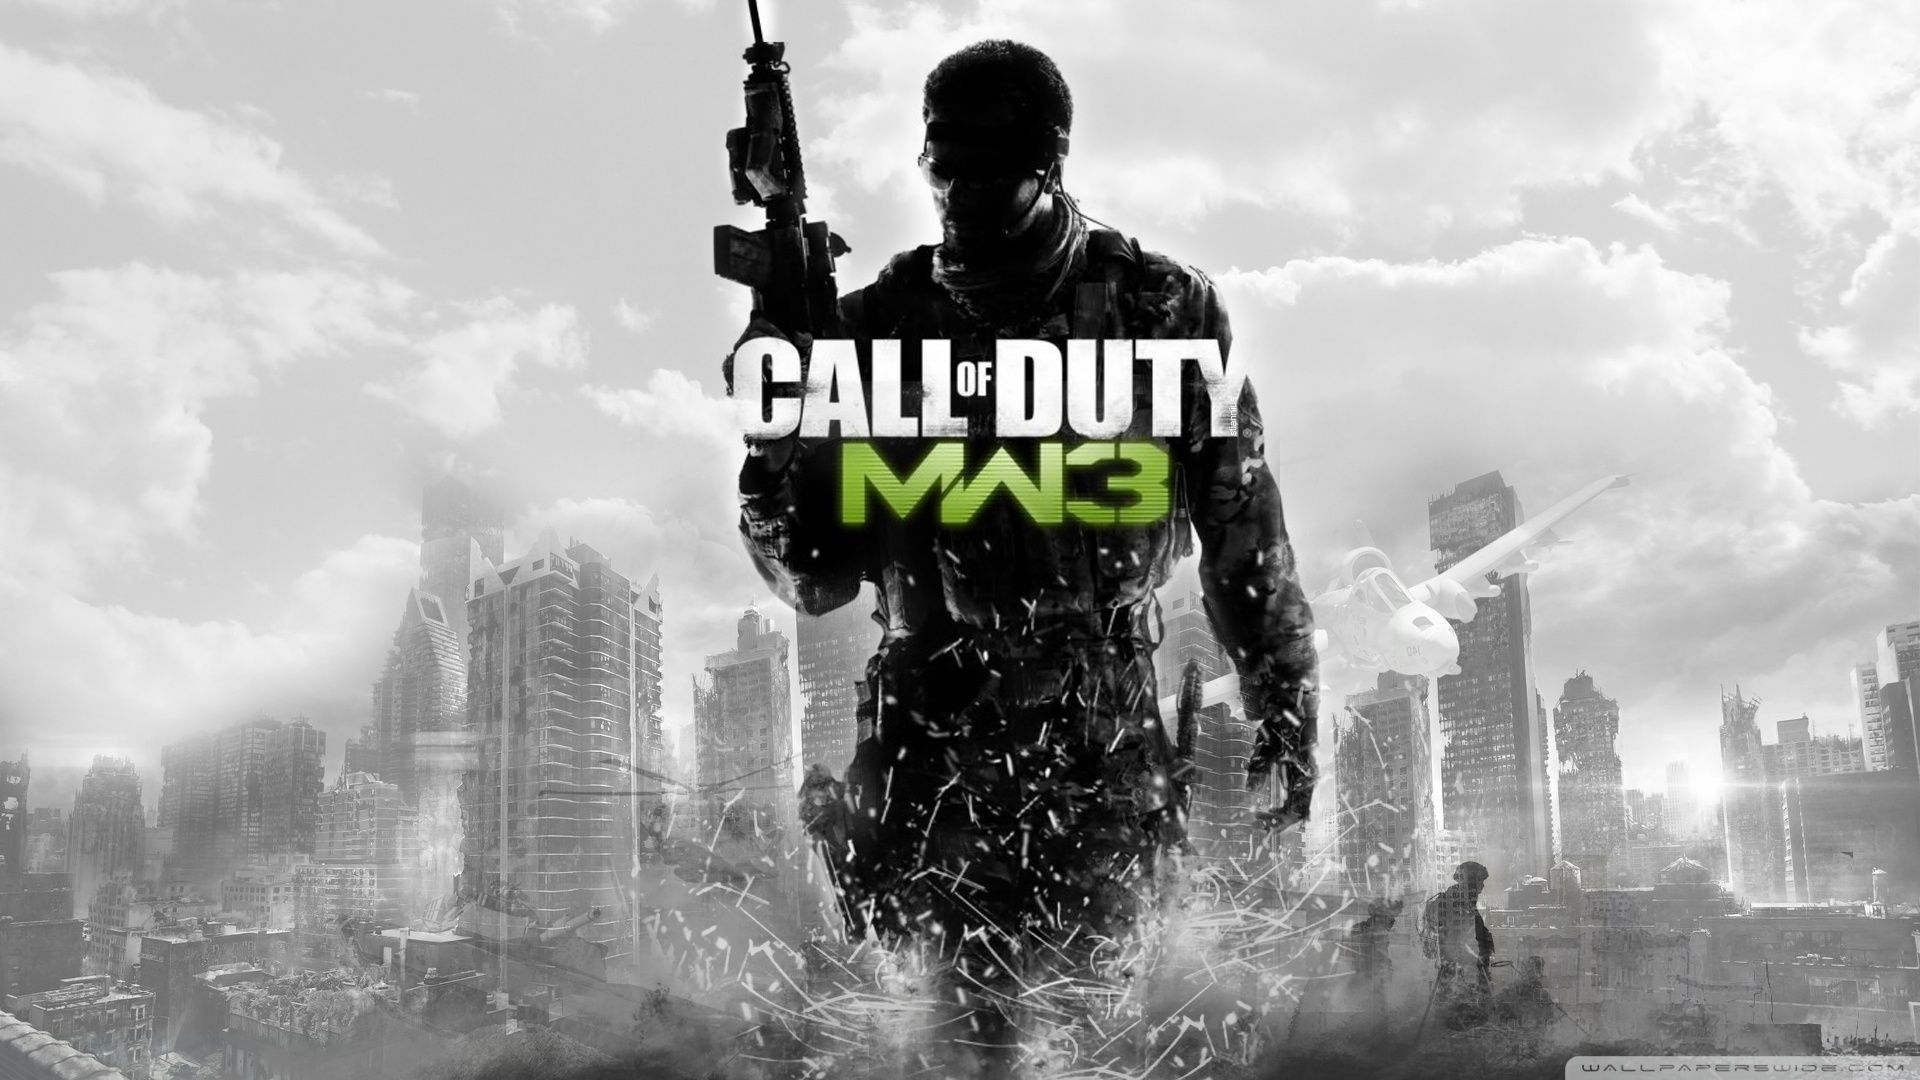 Call Of Duty Wallpapers Top Free Call Of Duty Backgrounds Wallpaperaccess